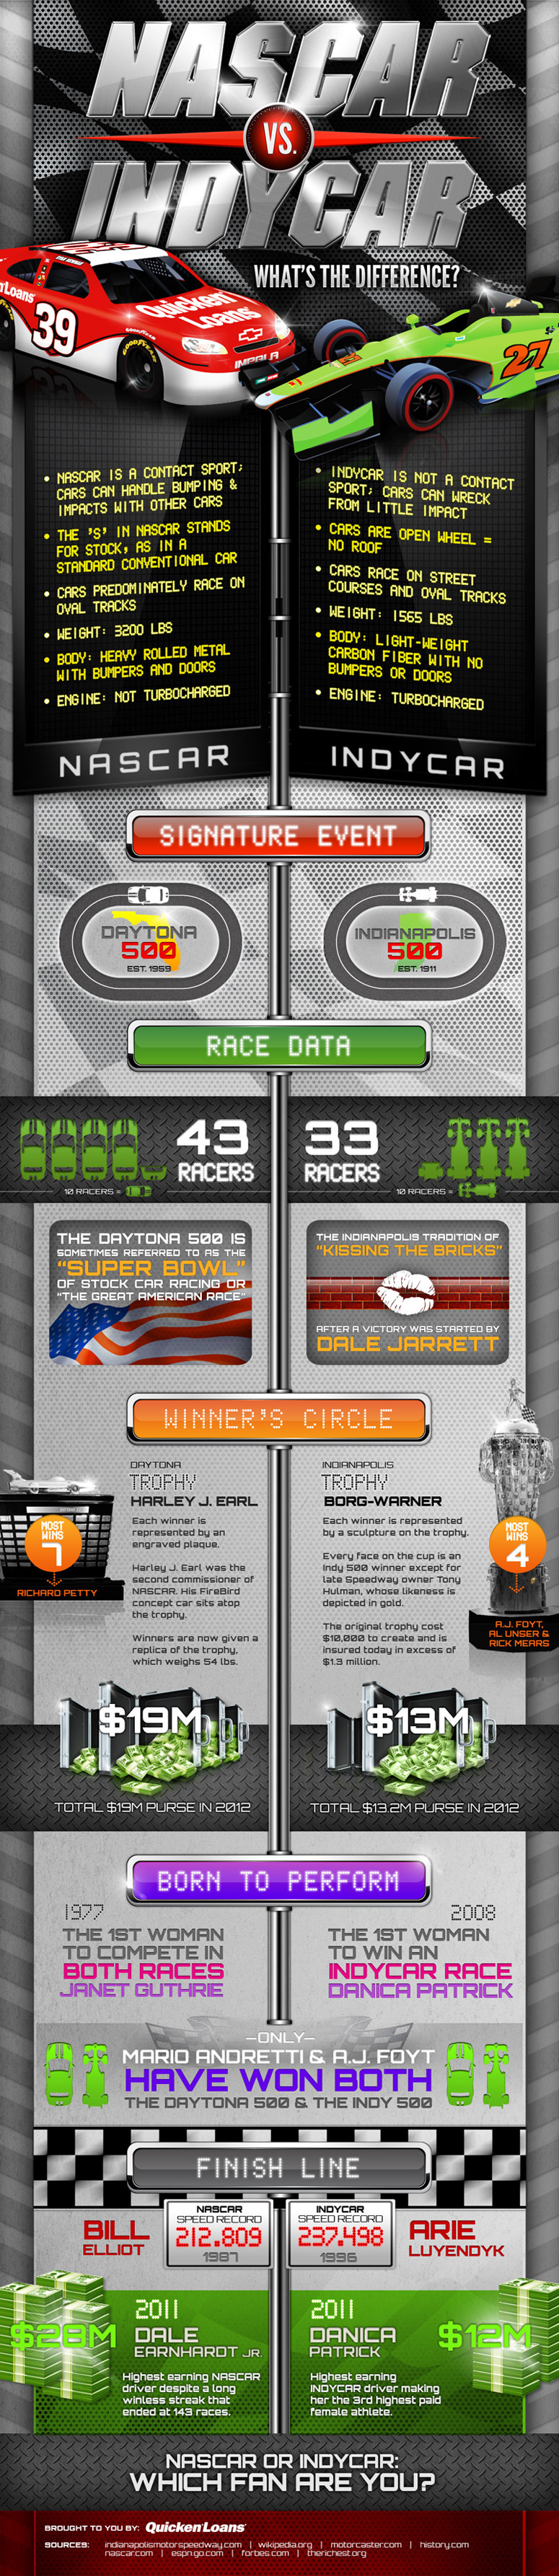 NASCAR vs. INDYCAR: What's the Difference?